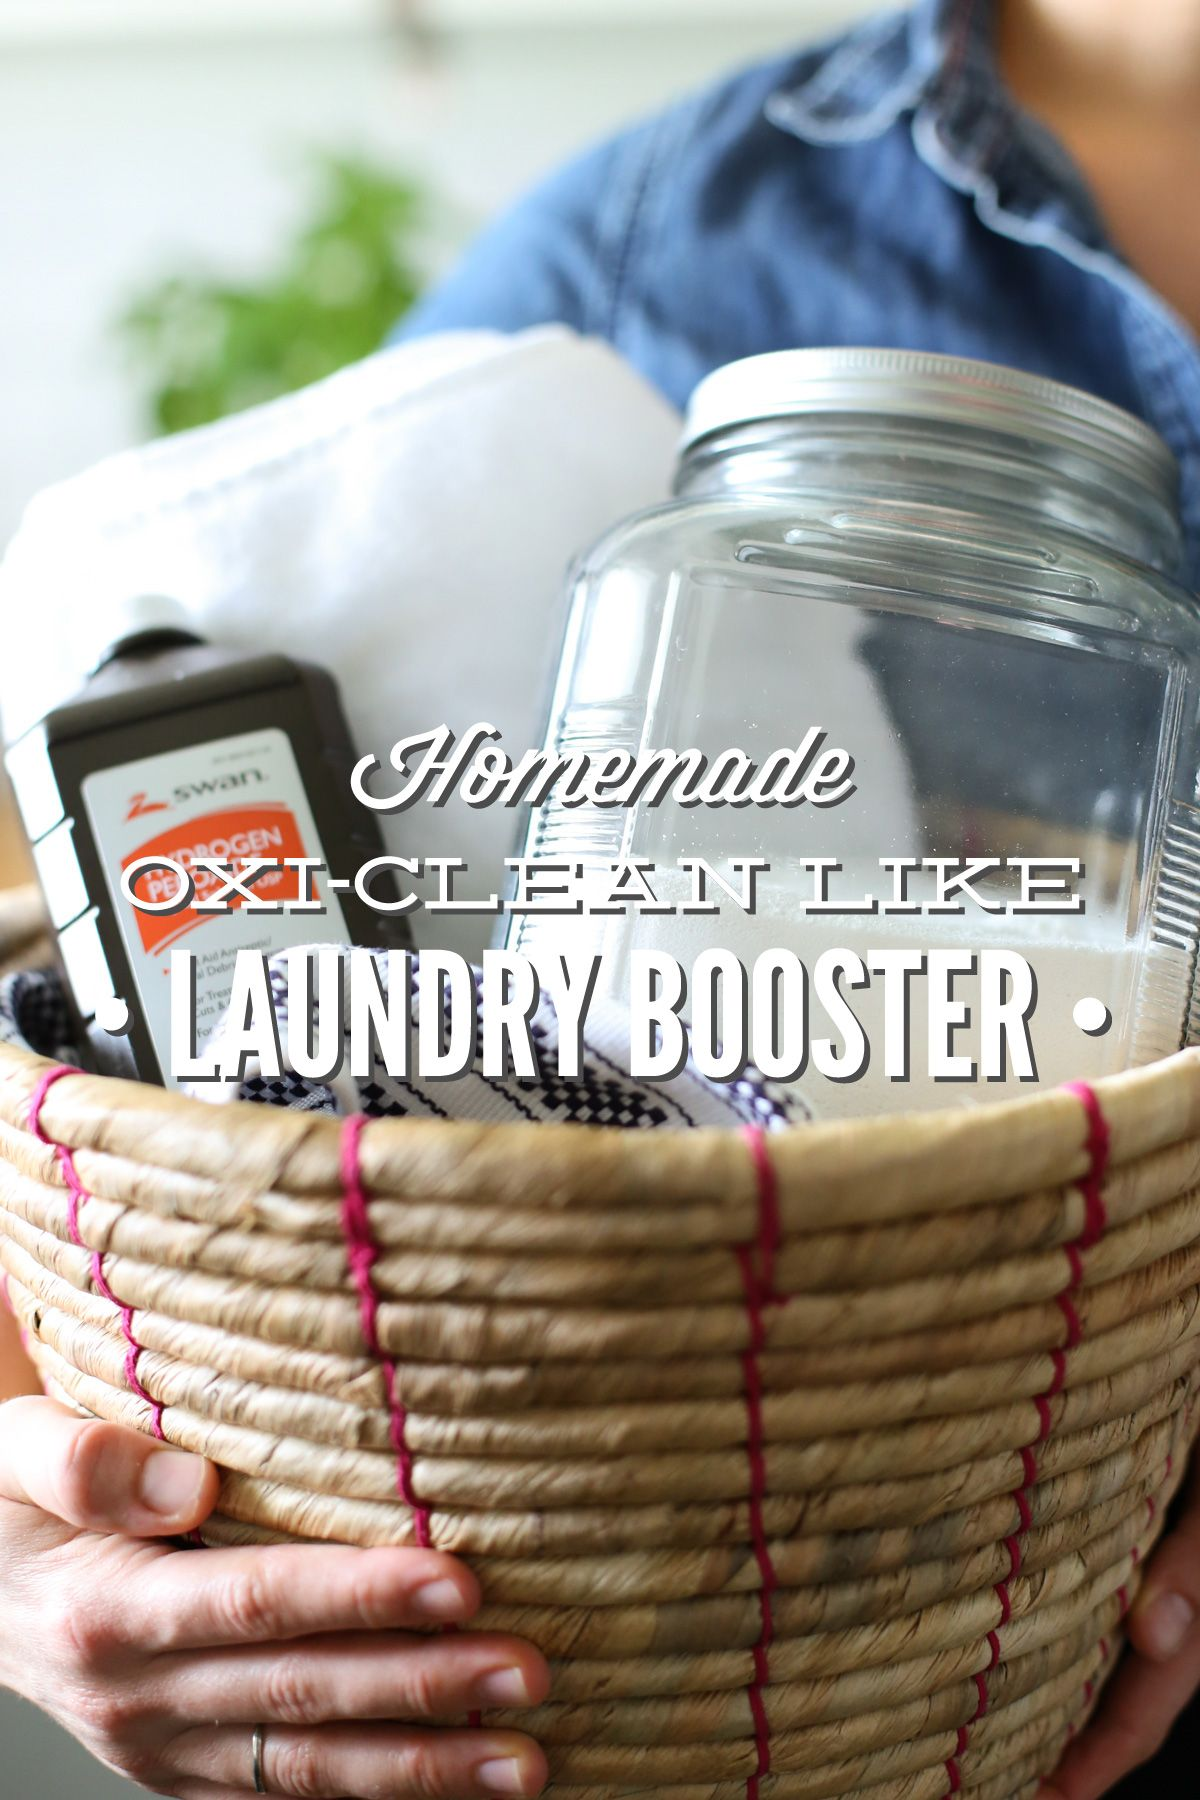 Homemade Oxi Clean Like Laundry Booster Recipe Homemade